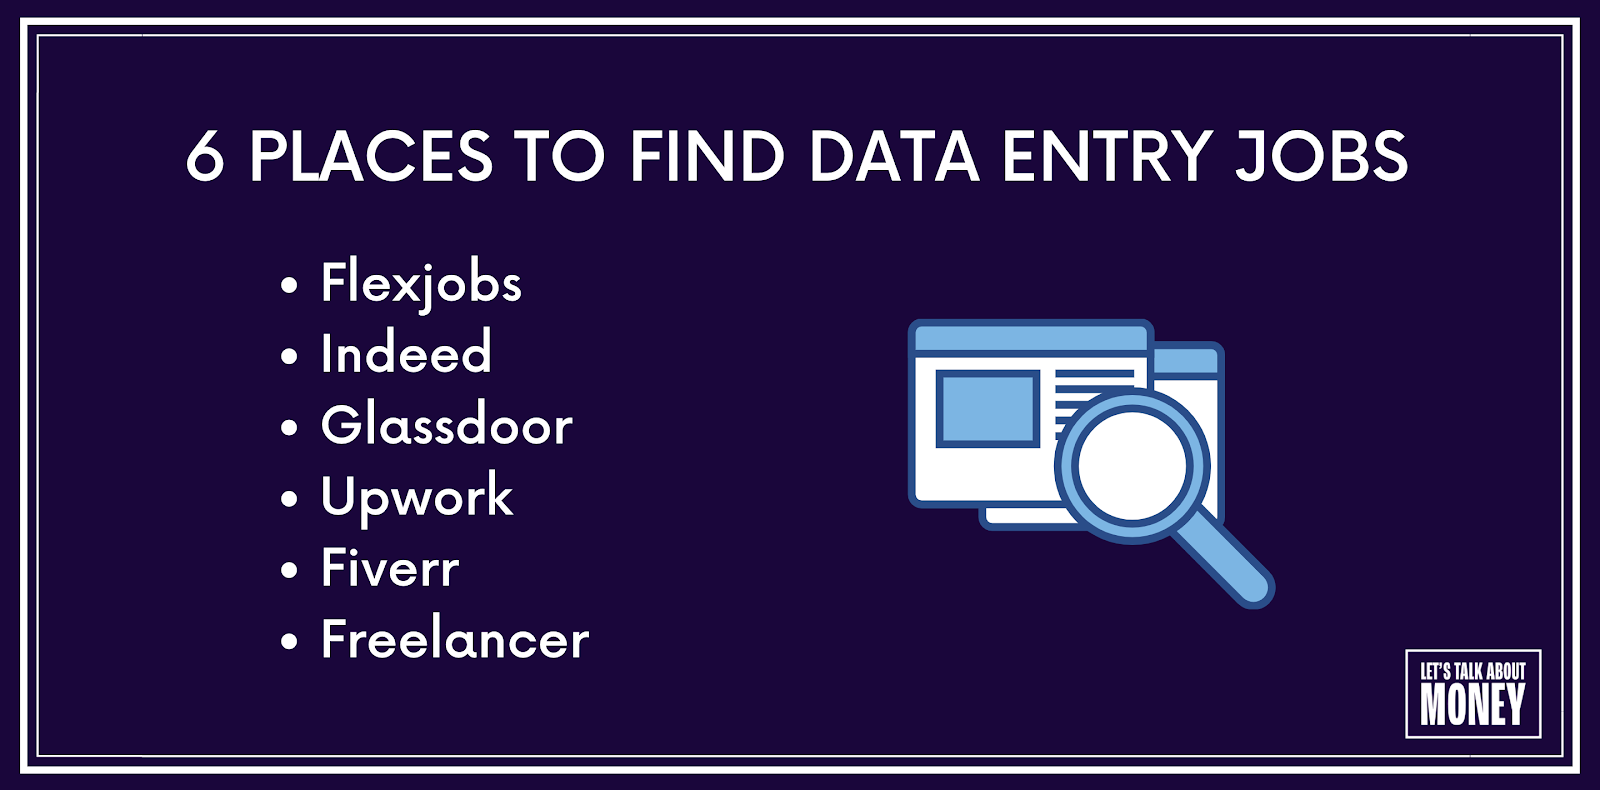 Best places to find data entry jobs